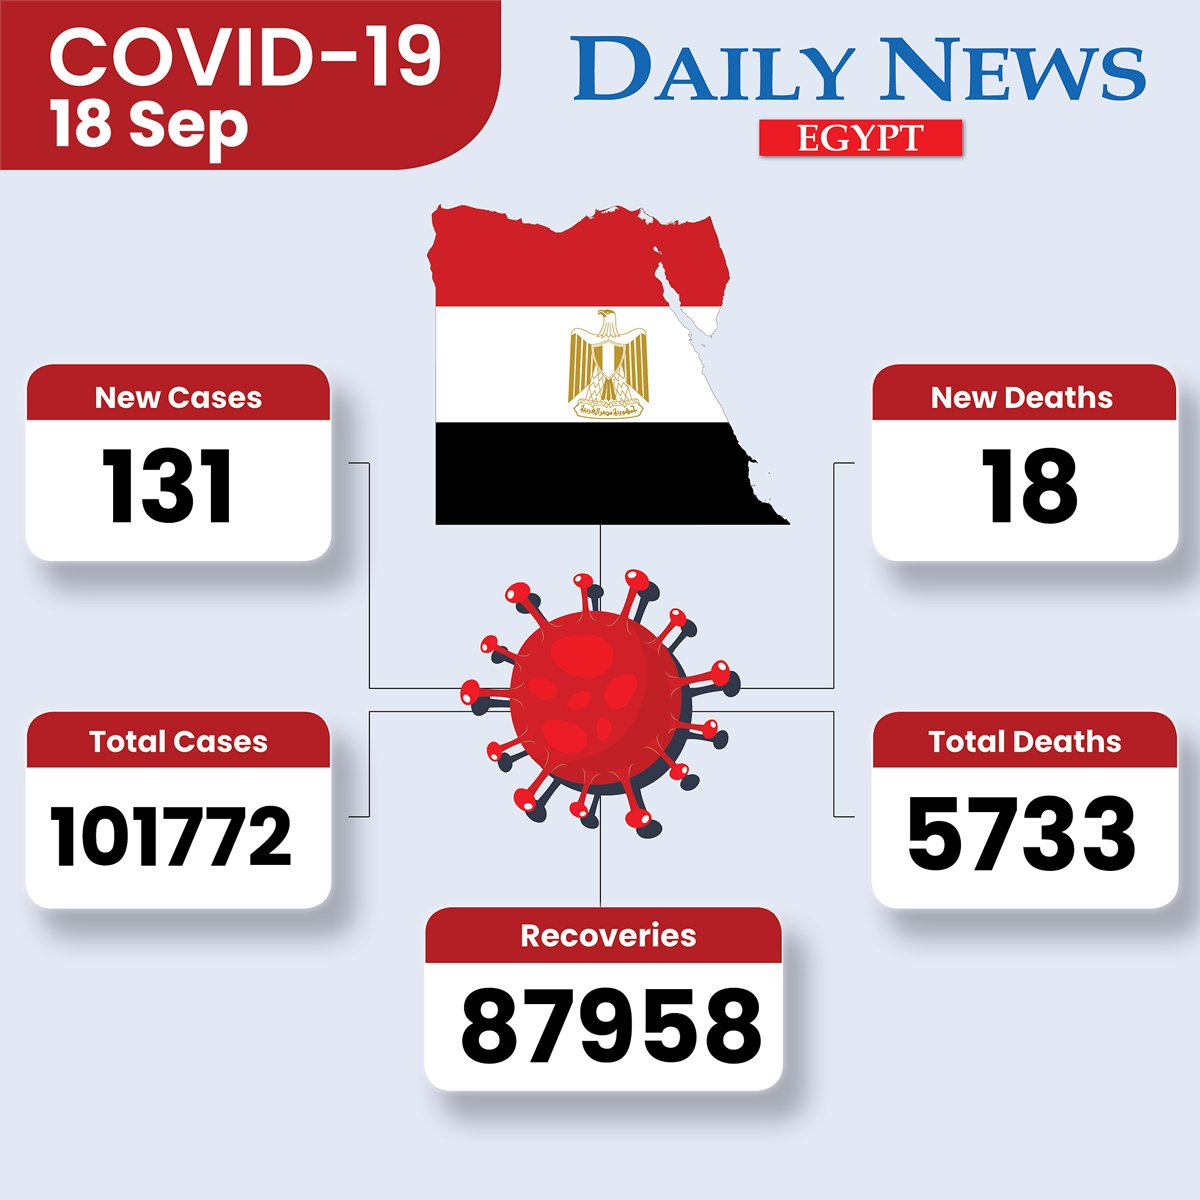 #Egypt reports 131 new #coronavirus cases and 18 new fatalities, bringing the country's total to 101772 cases and 5733 deaths. 87958 cases have recovered: Health Ministry (@mohpegypt) #COVID19 https://t.co/yTyHTSJUgL